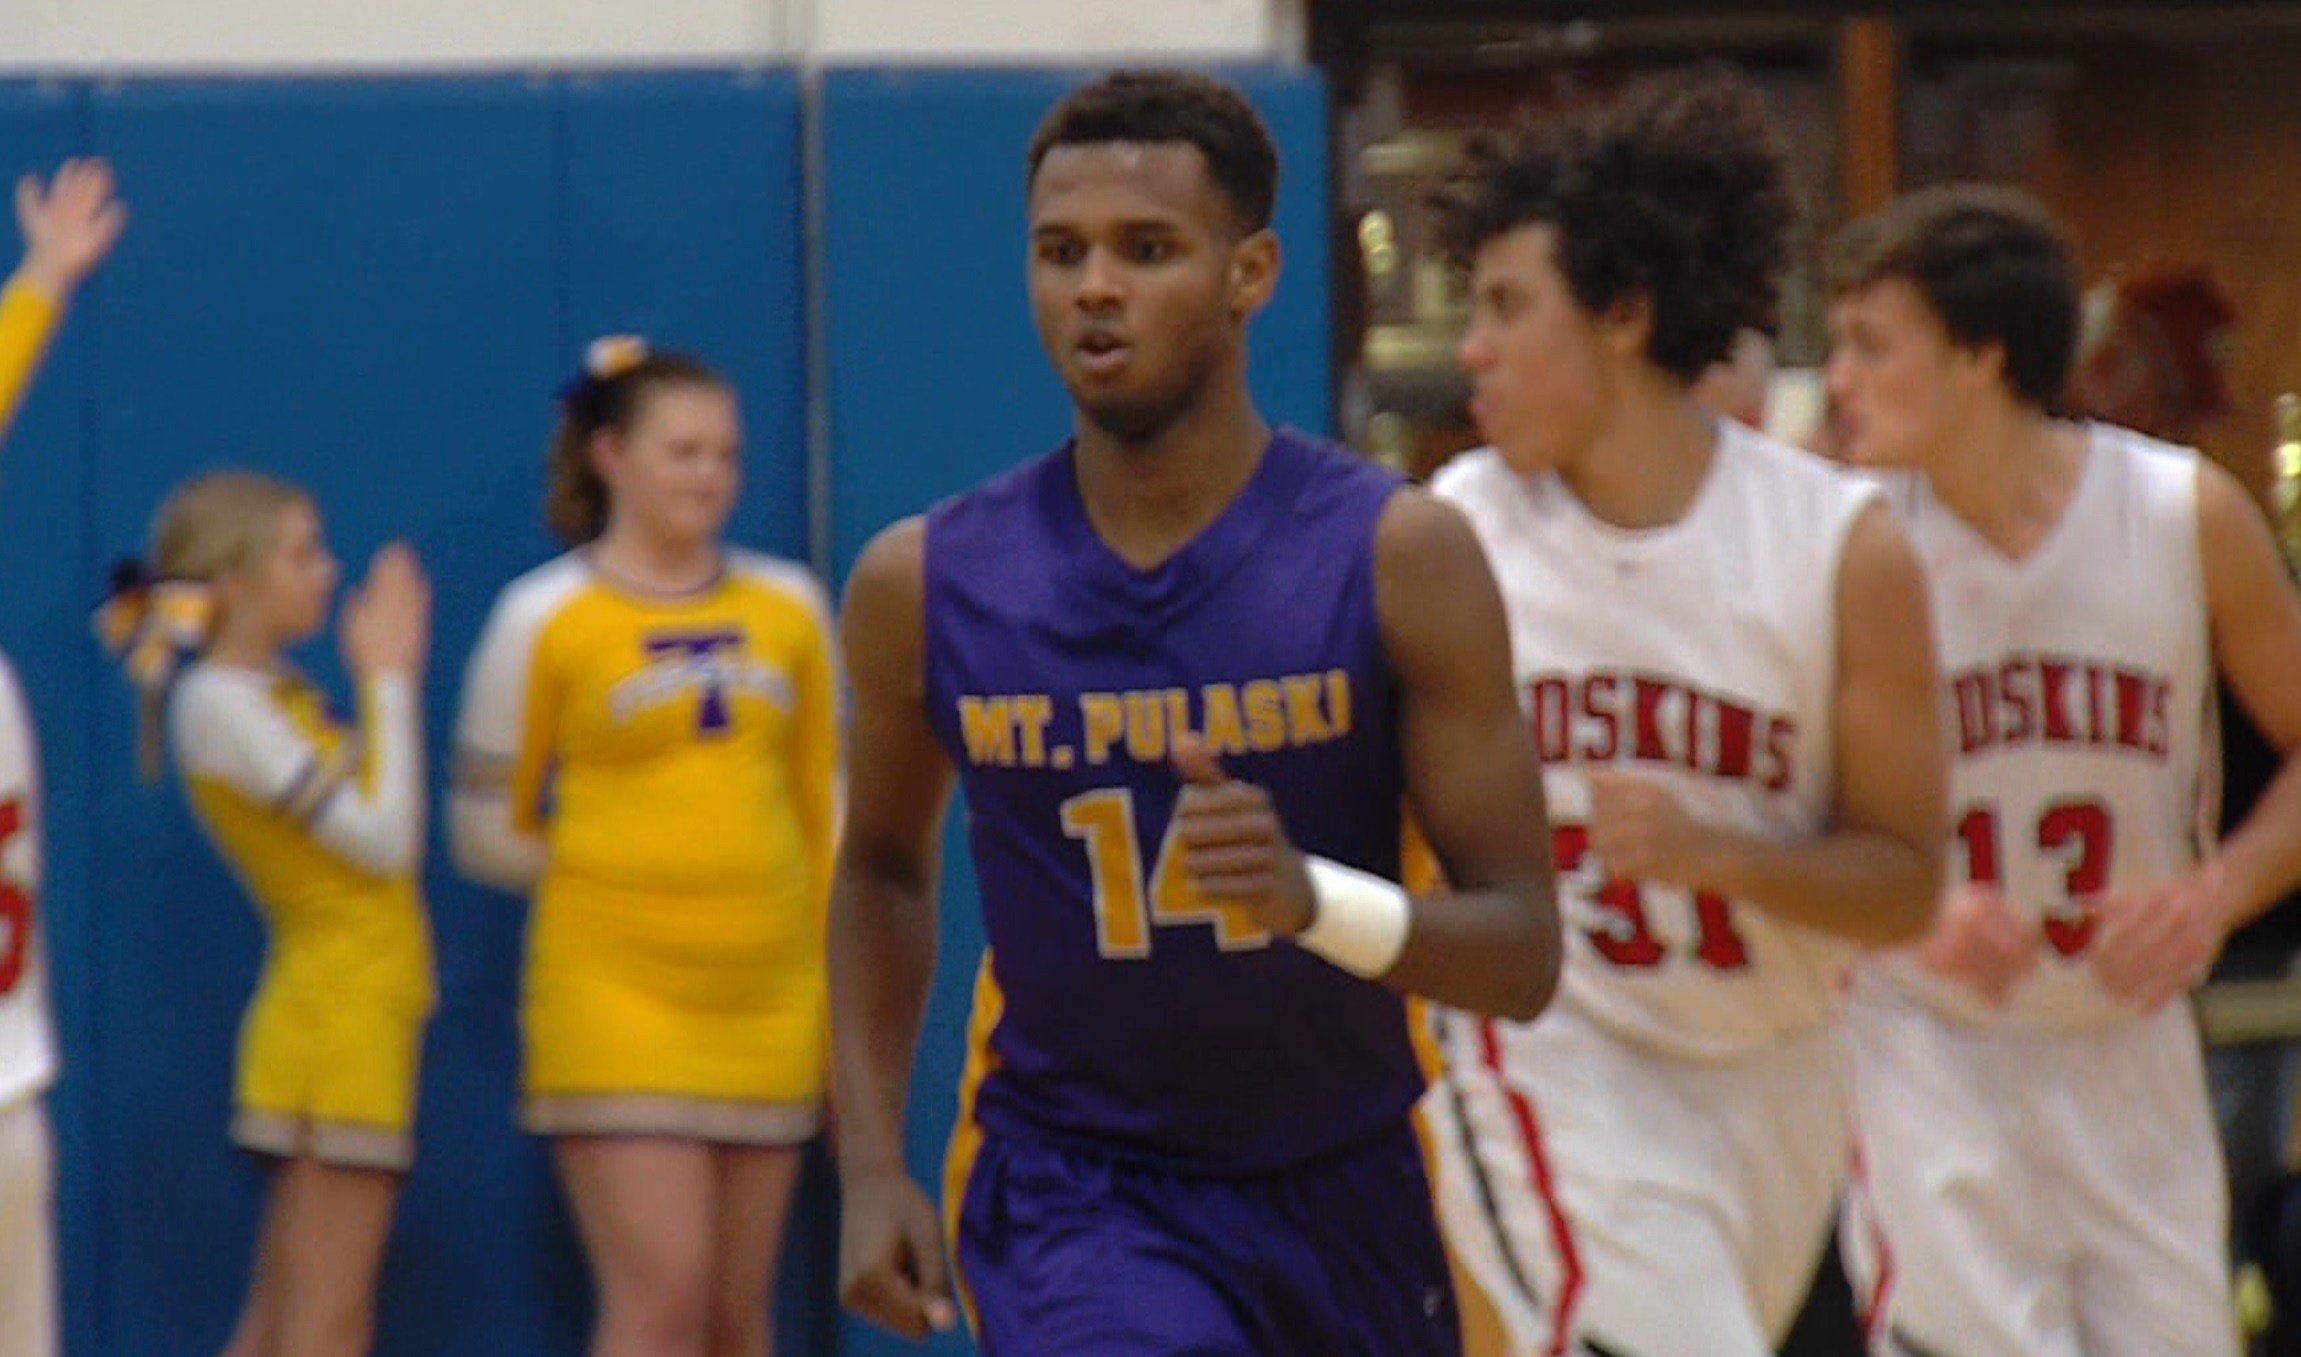 Mt. Pulaski senior guard Gezus Oliver posted 25 points in the first half of Friday's win over Sullivan on Day Two of the St. Teresa Christmas Tournament.